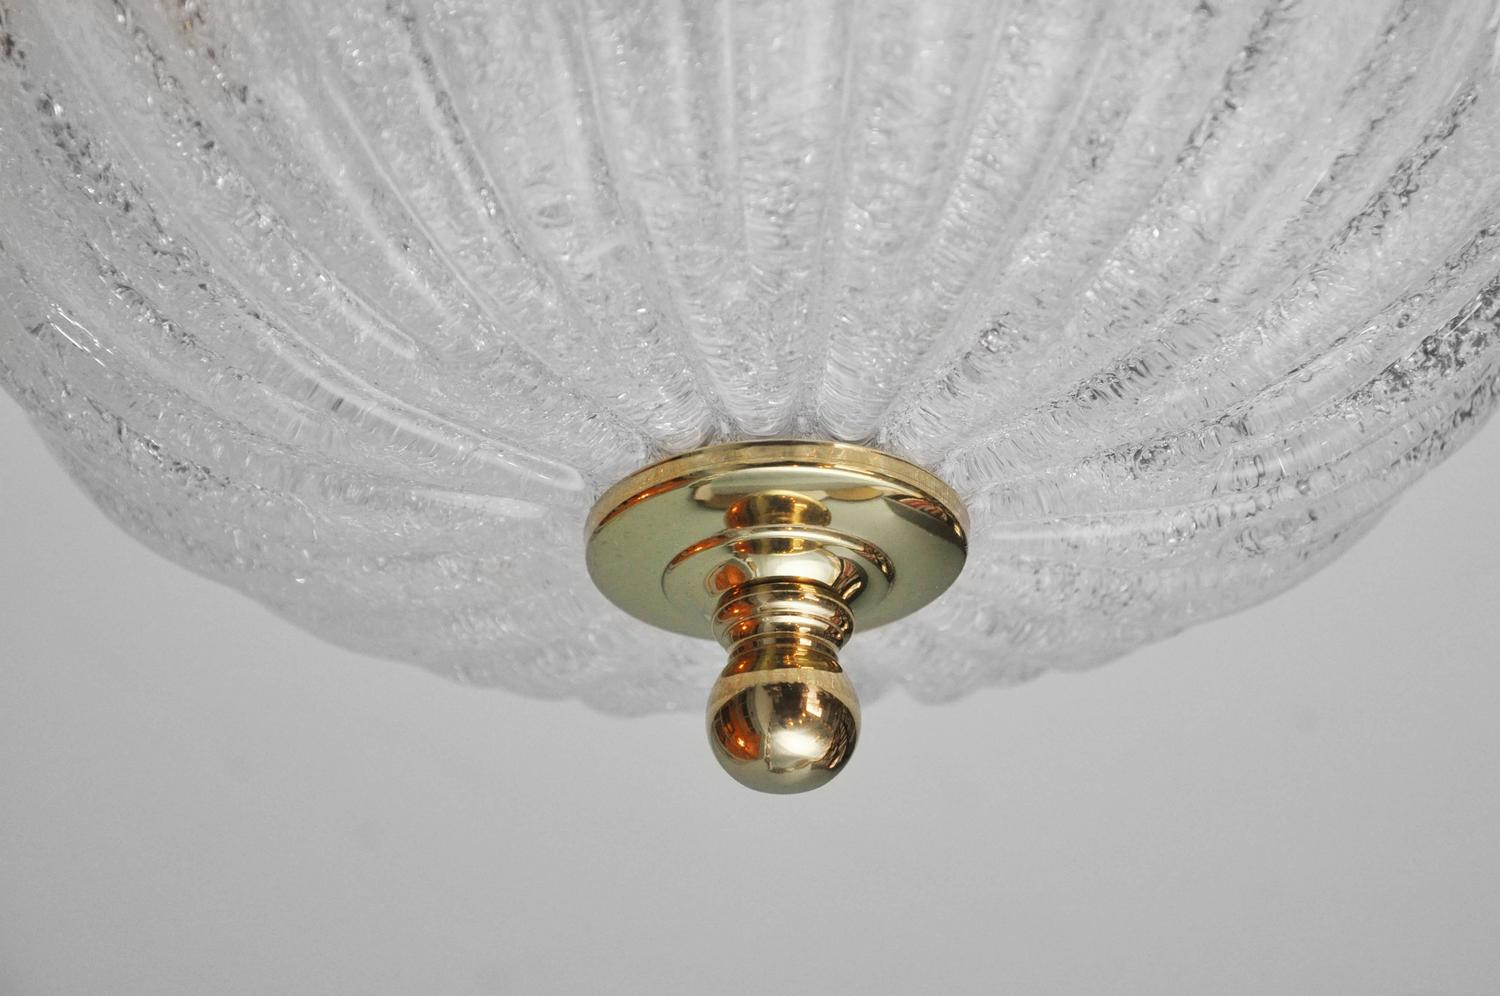 clear murano glass ceiling fixture for sale at 1stdibs. Black Bedroom Furniture Sets. Home Design Ideas